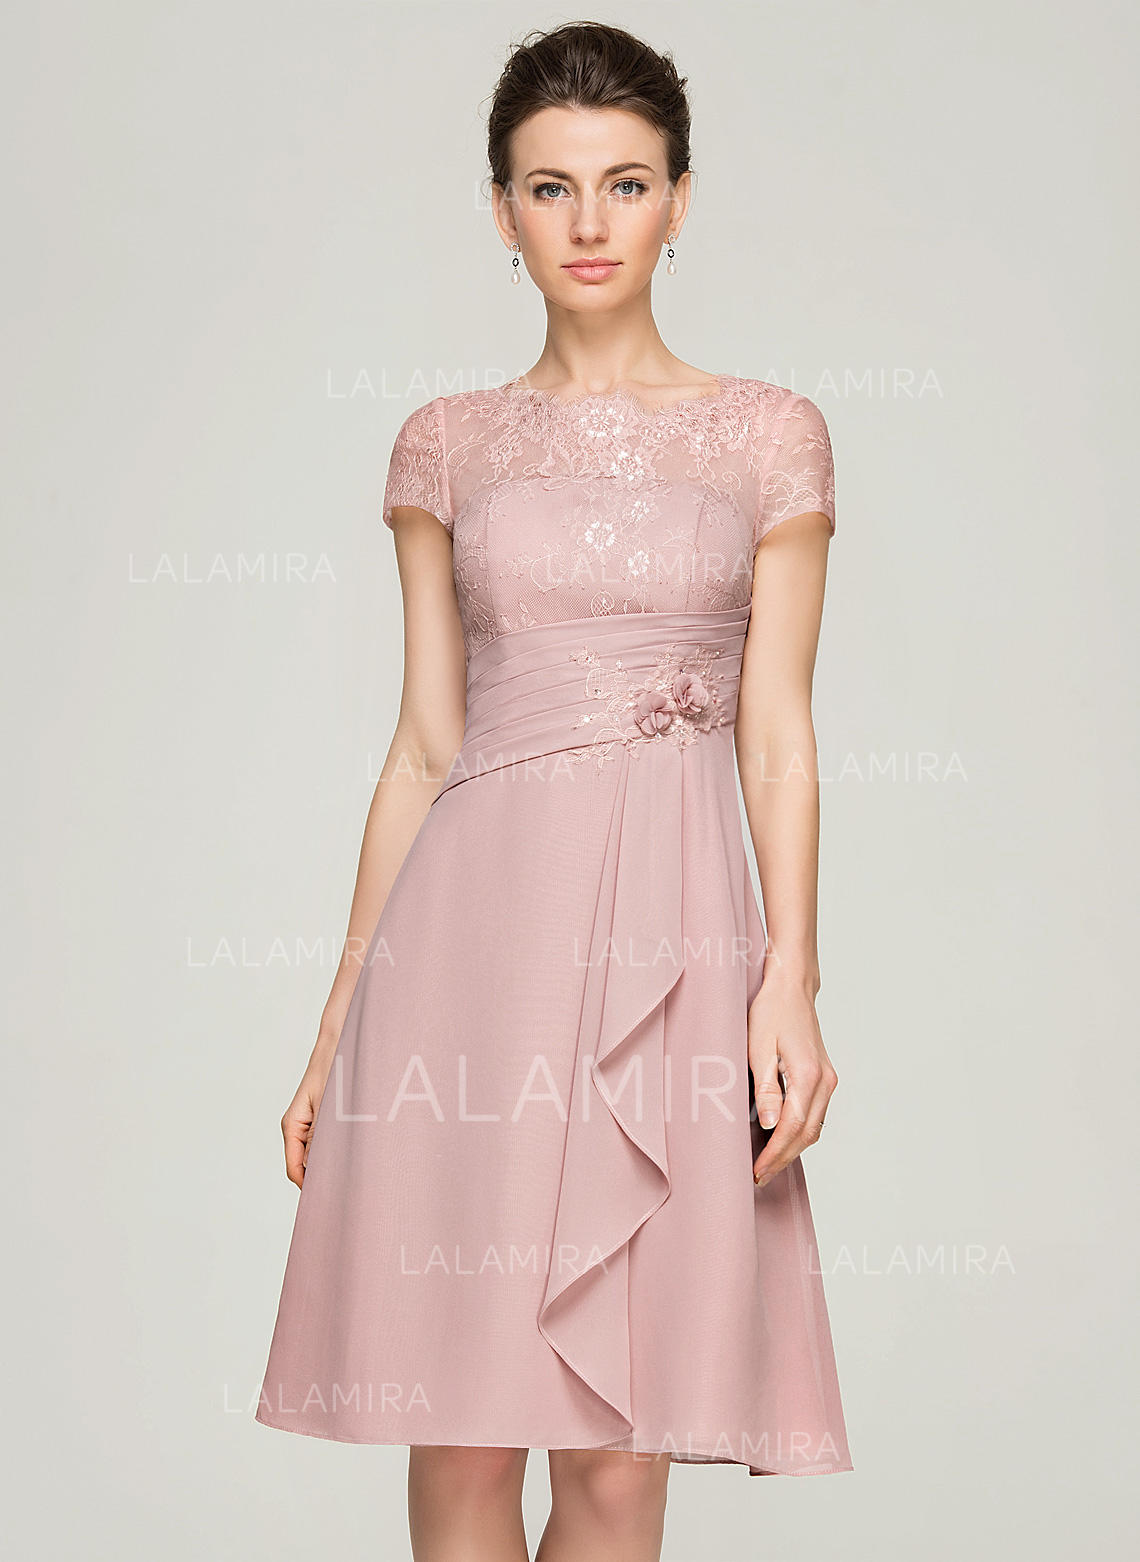 c7c7a63699c A-Line Princess Scoop Neck Knee-Length Chiffon Cocktail Dress With Beading  Flower. Loading zoom